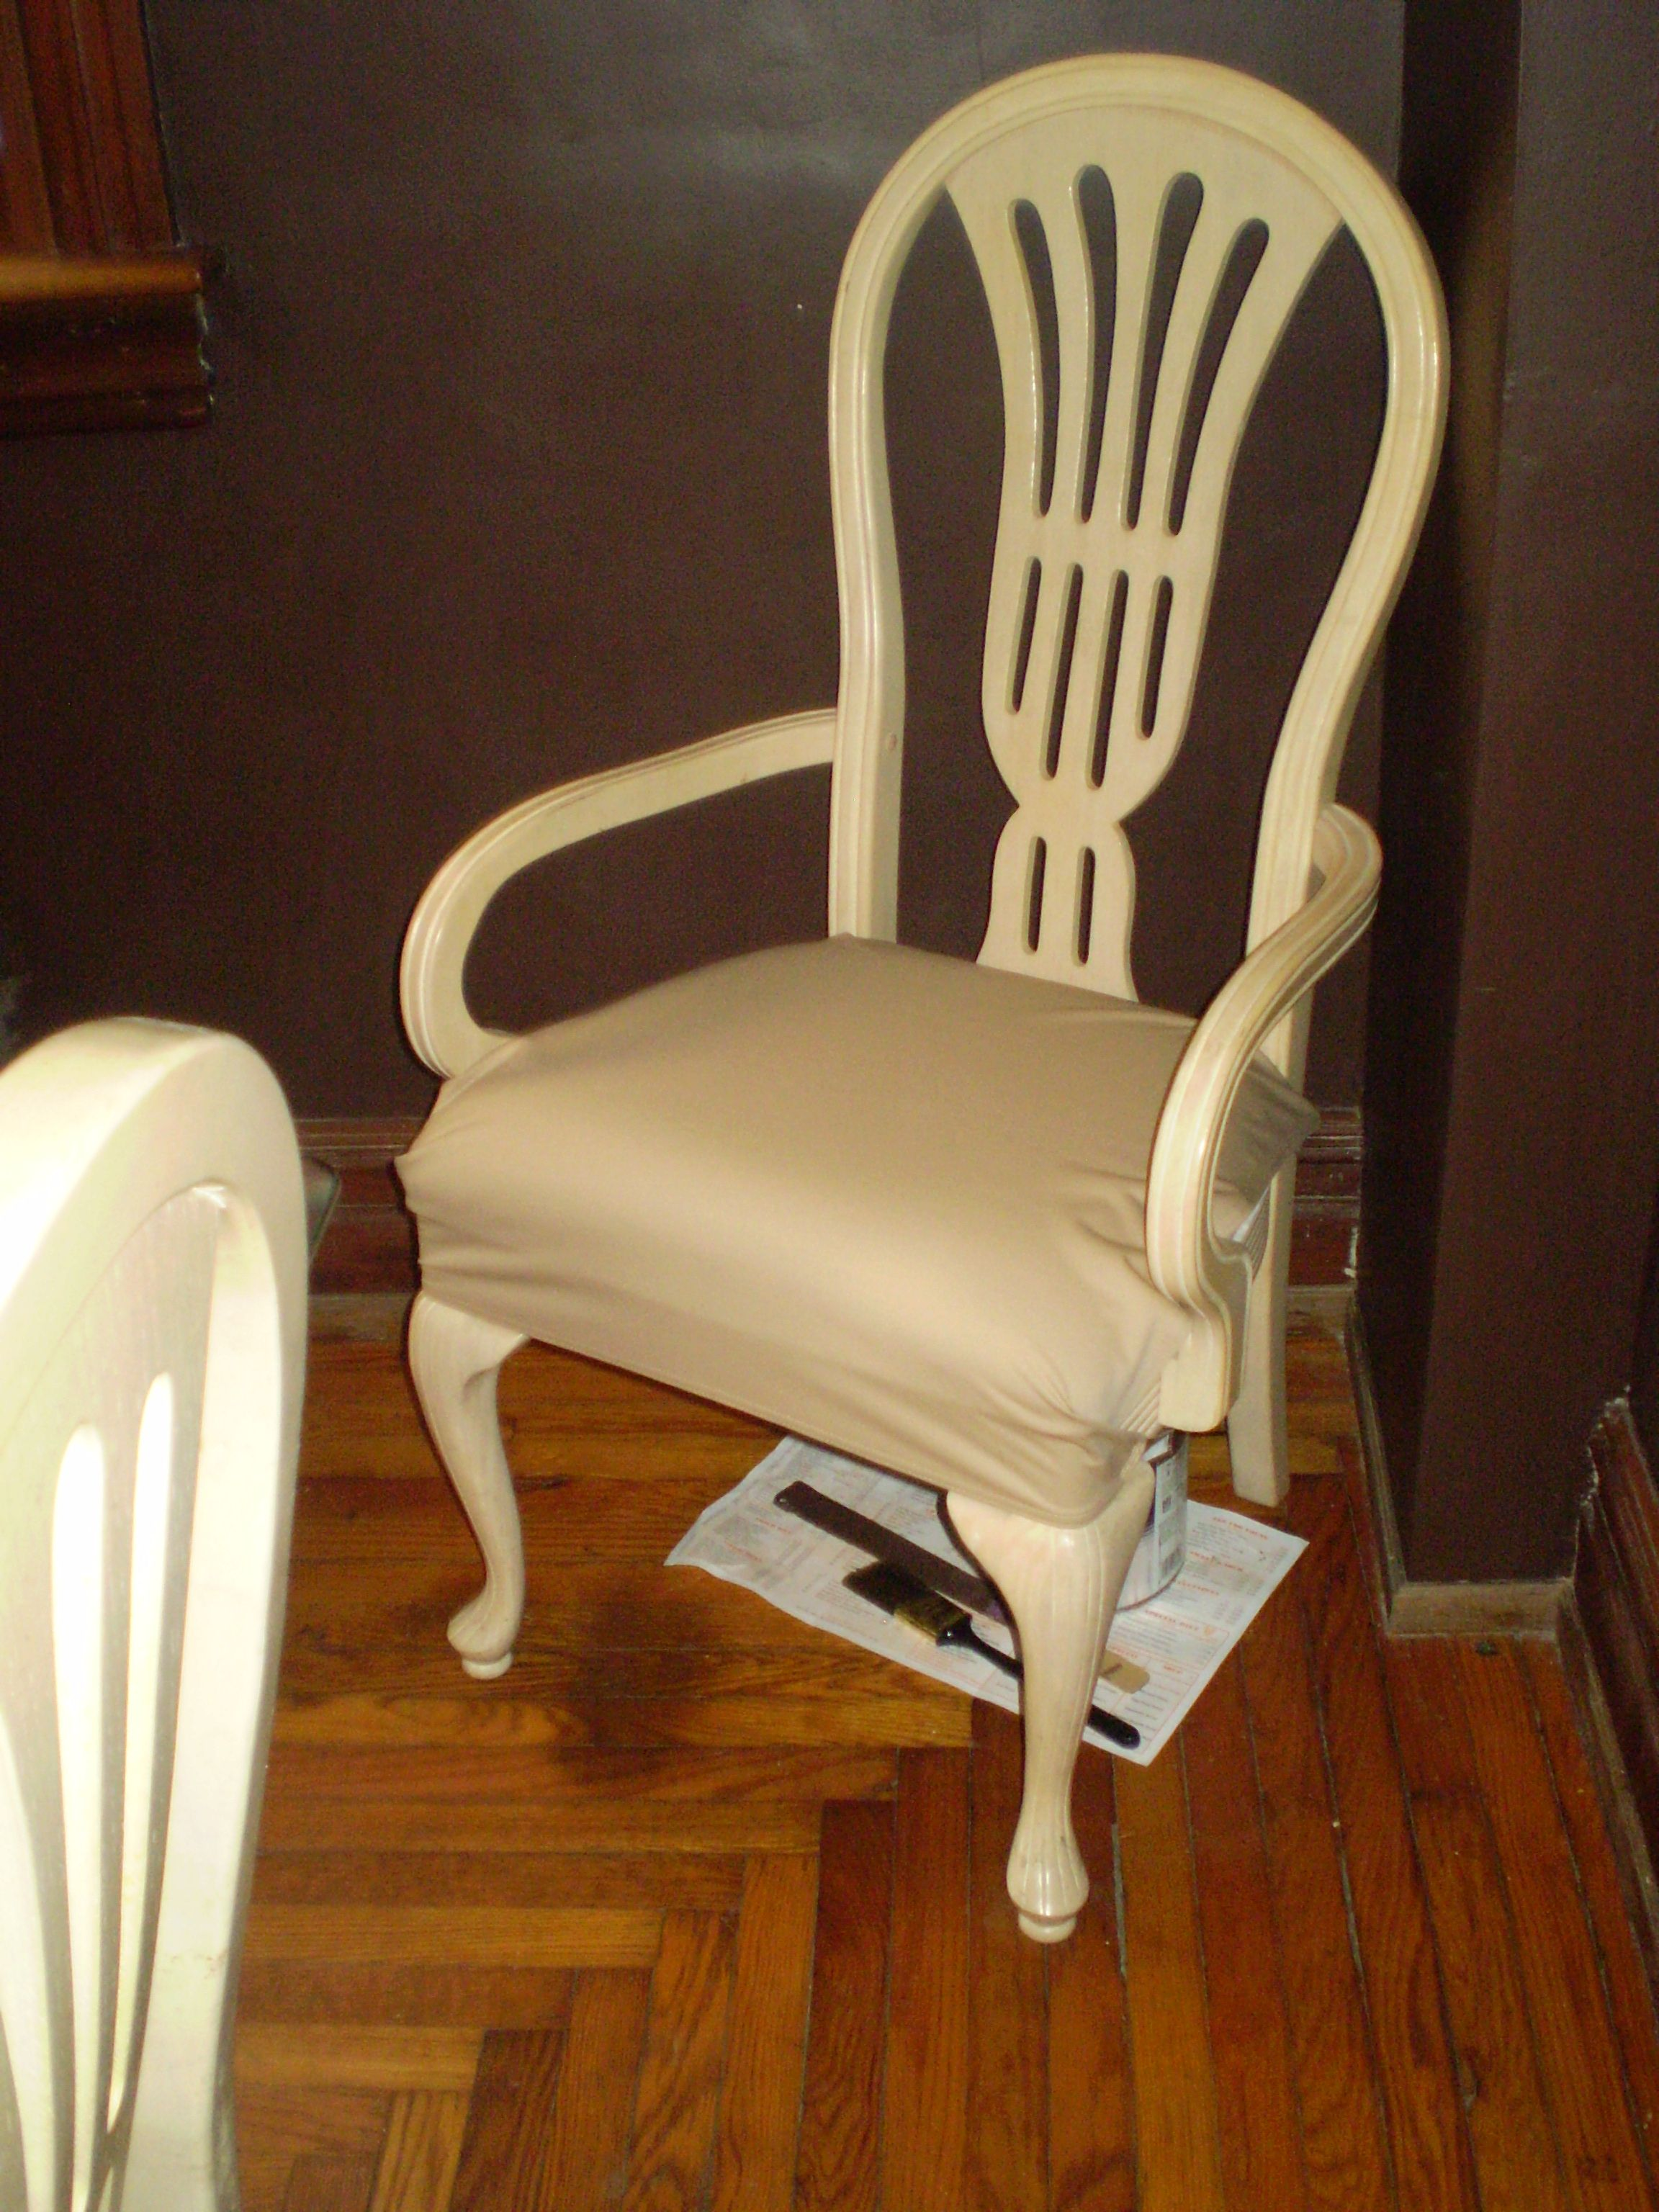 Customer photo of the SmartSeat on an upholstered chair.